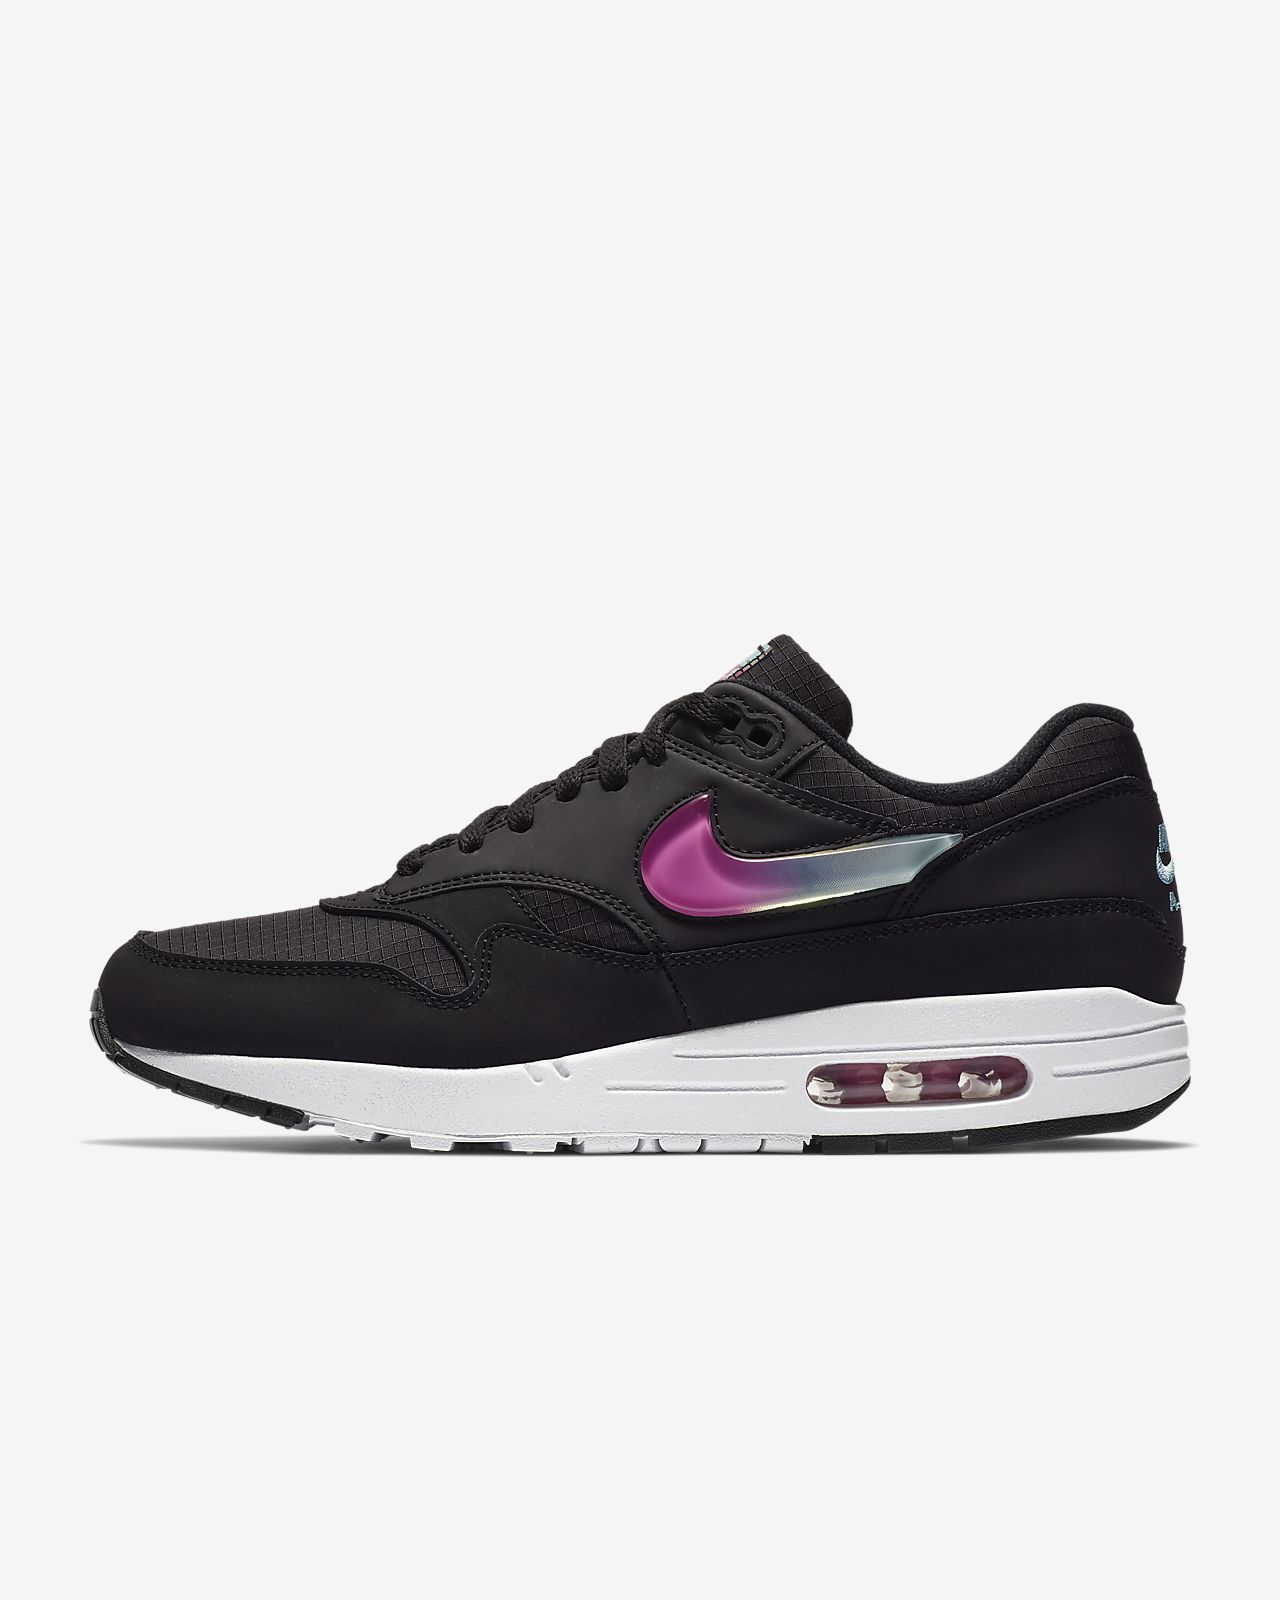 5a2cf2e8ee Nike Air Max 1 SE Men's Shoe. Nike.com